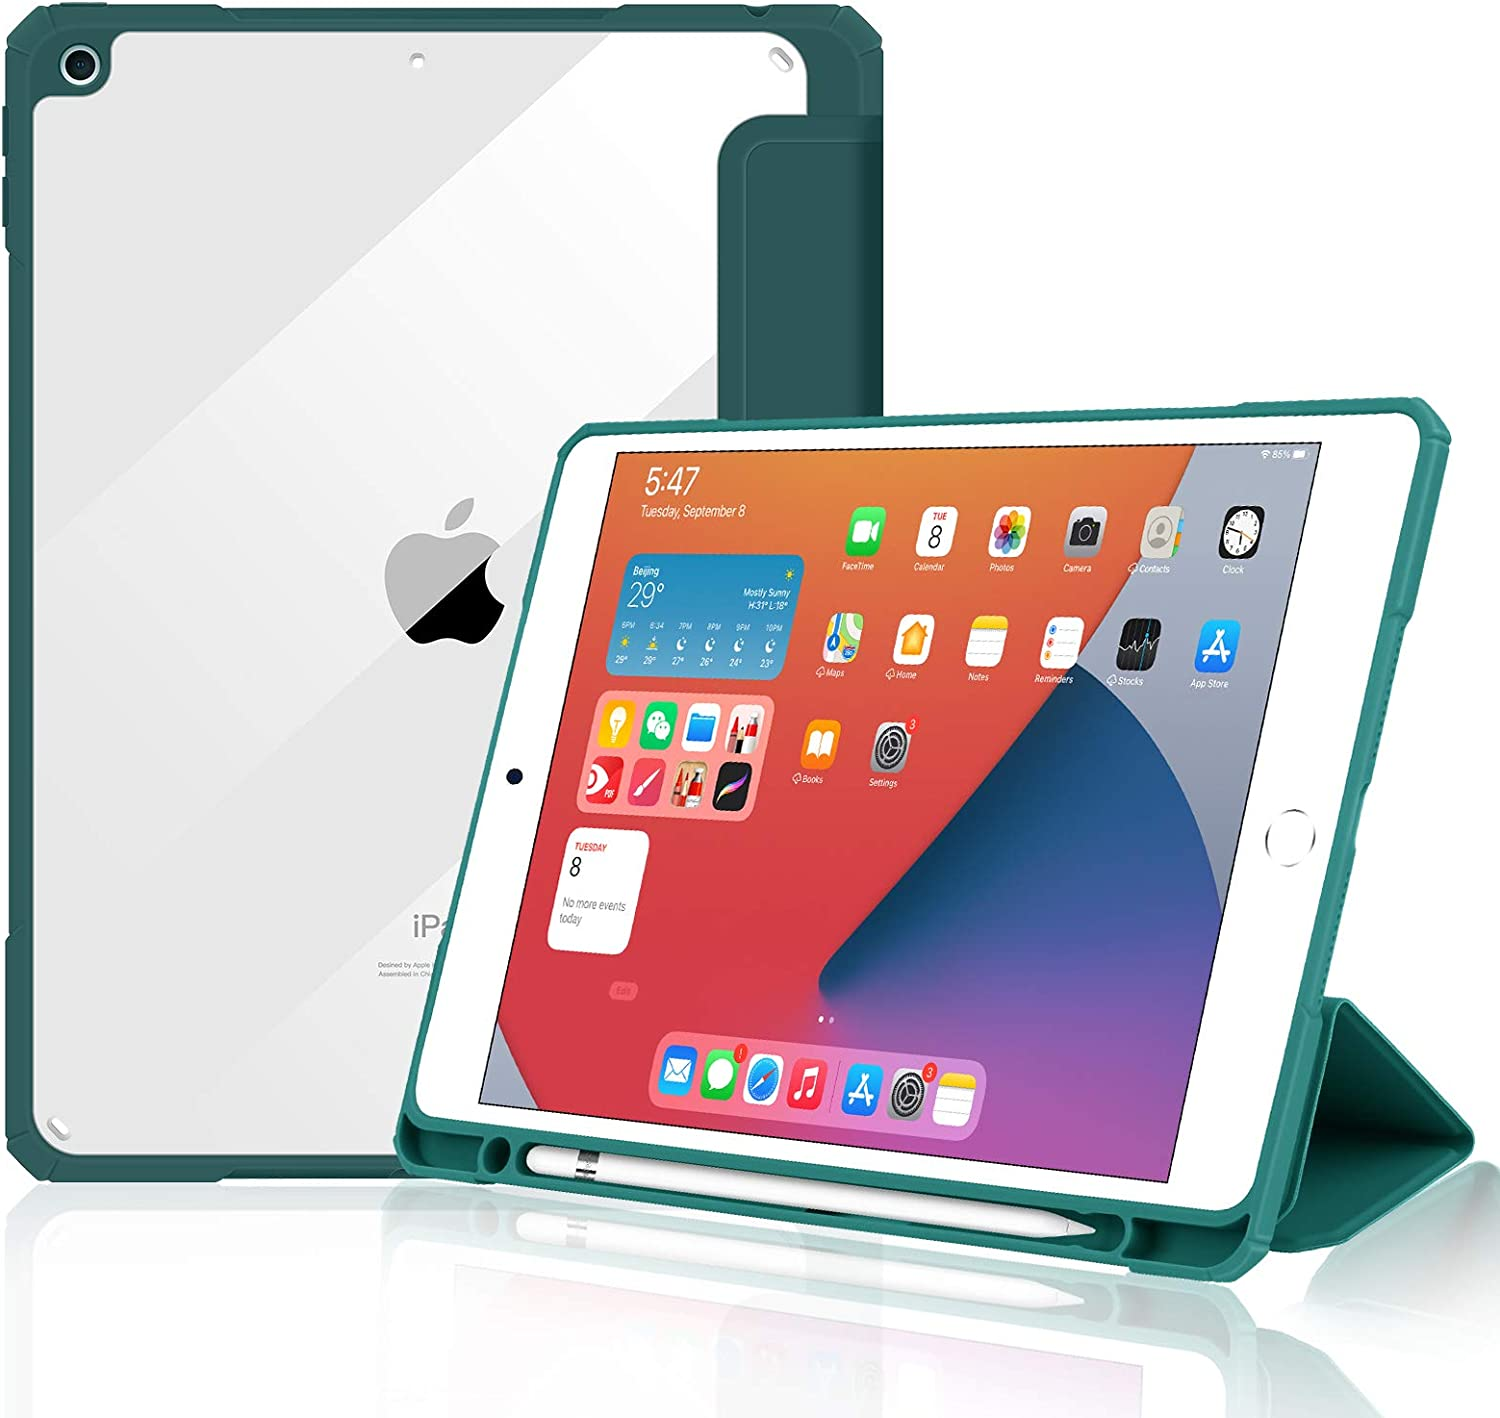 JUQITECH Case for iPad 7th / 8th Gen - Shockproof TPU Air-Pillow Edge Clear Back Full-Body Protective Slim Smart Shell Stand Cover with Apple Pencil Holder Fits iPad 10.2 Inch 2020/2019 Release, Green